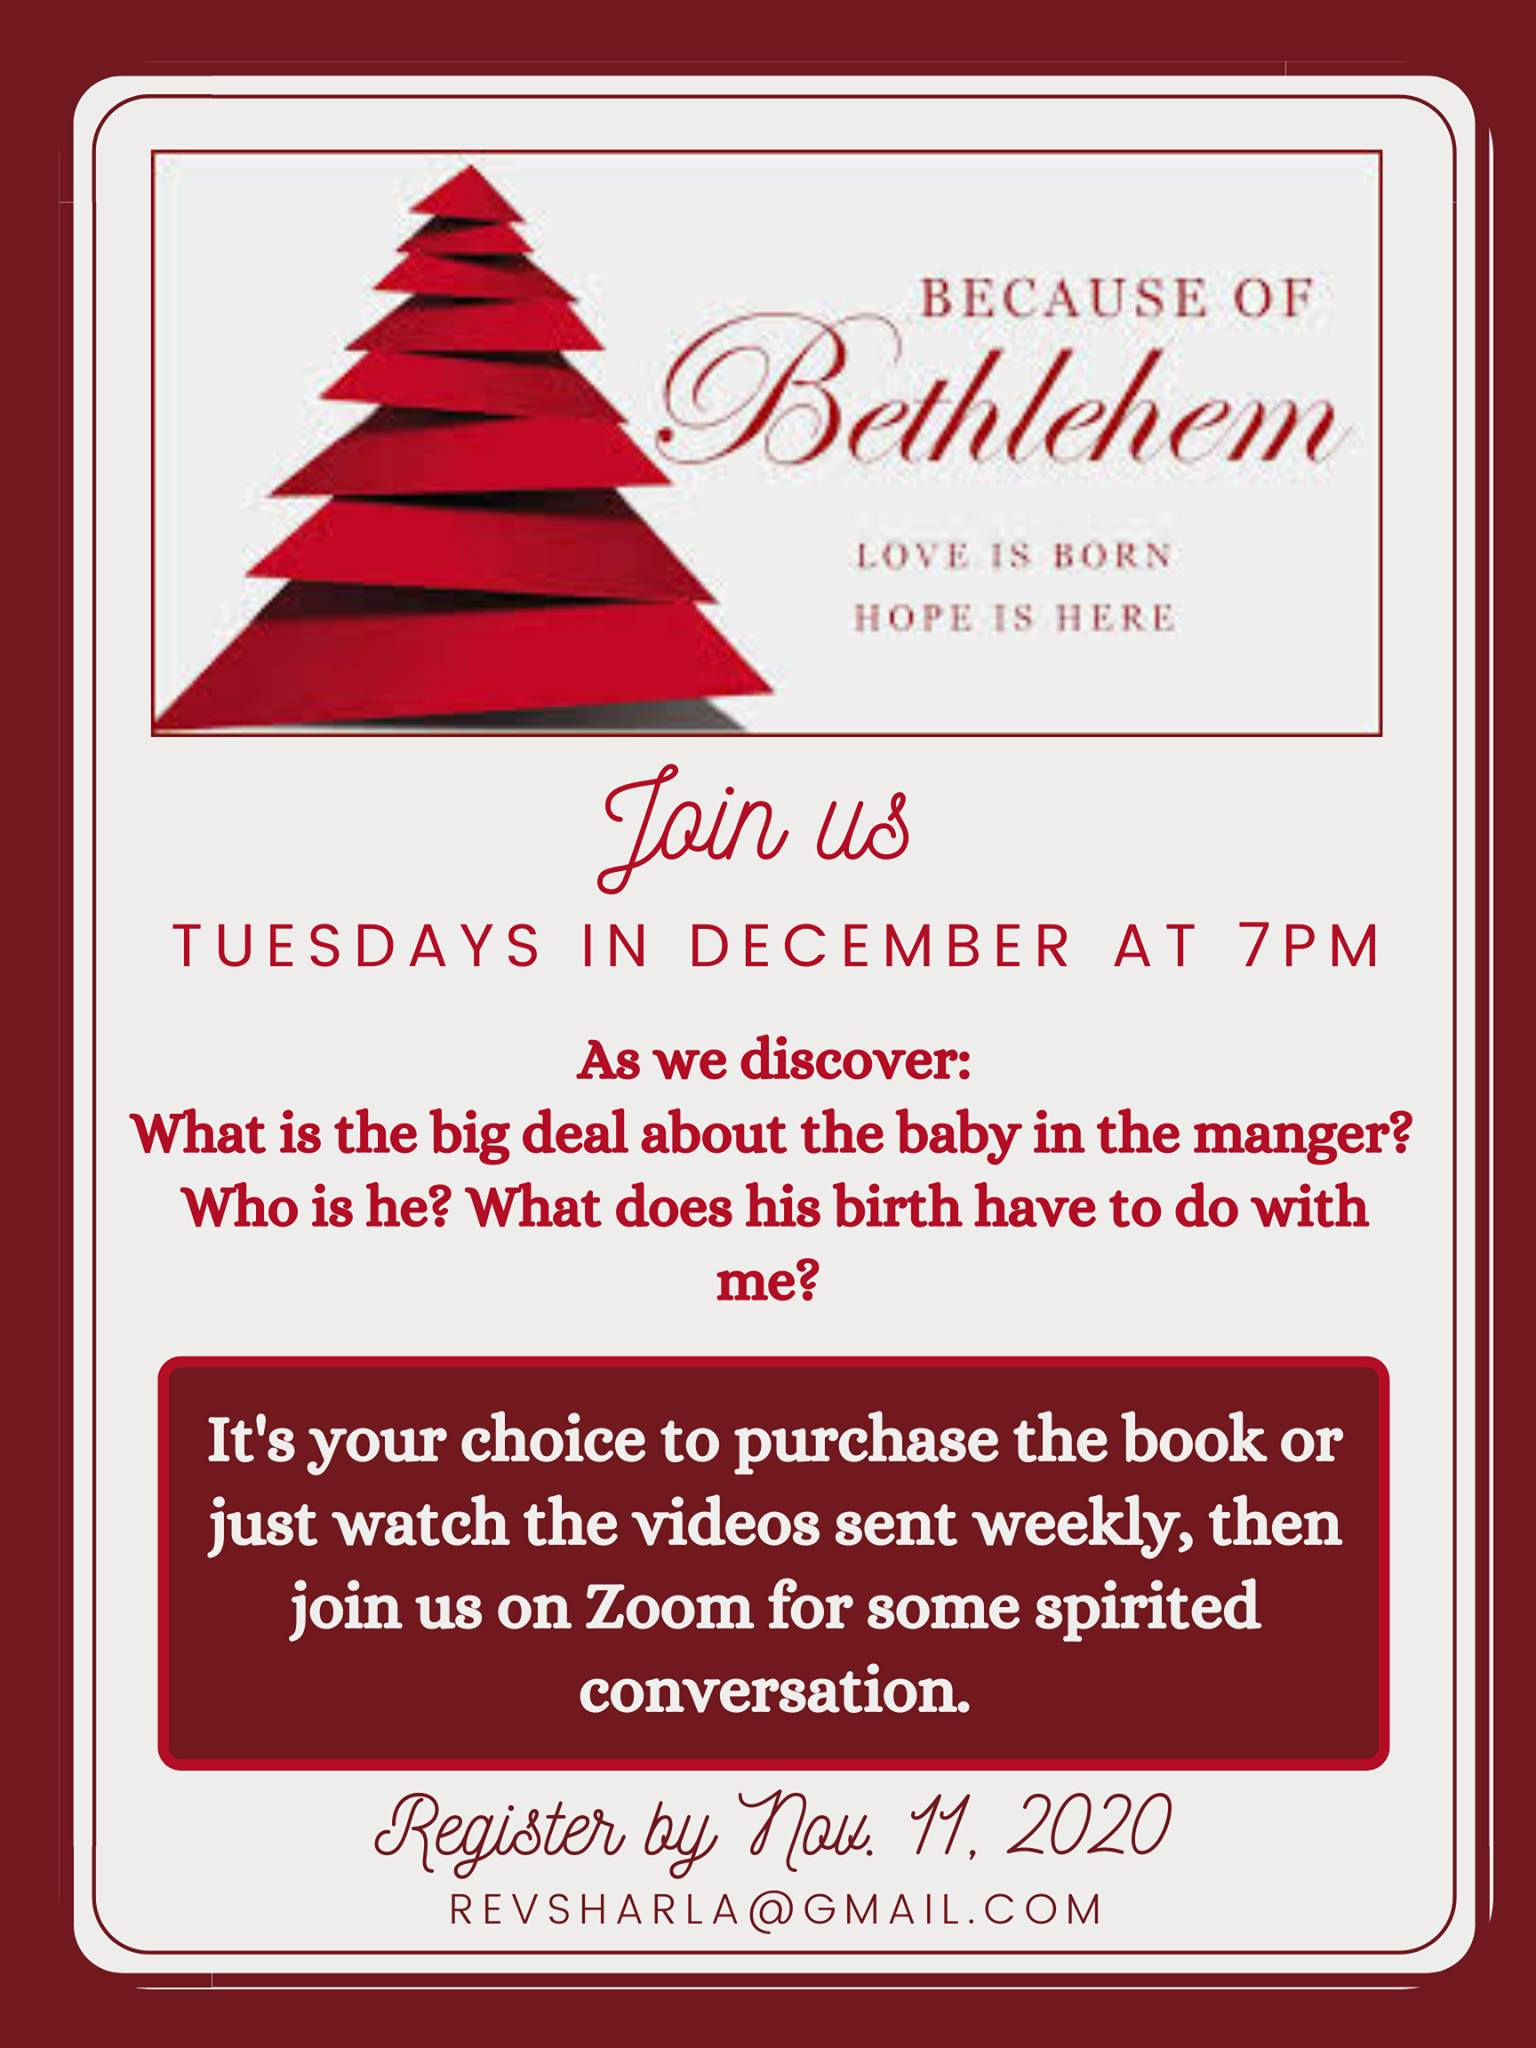 Poster for Online Advent Series via Zoom. All text available in the post